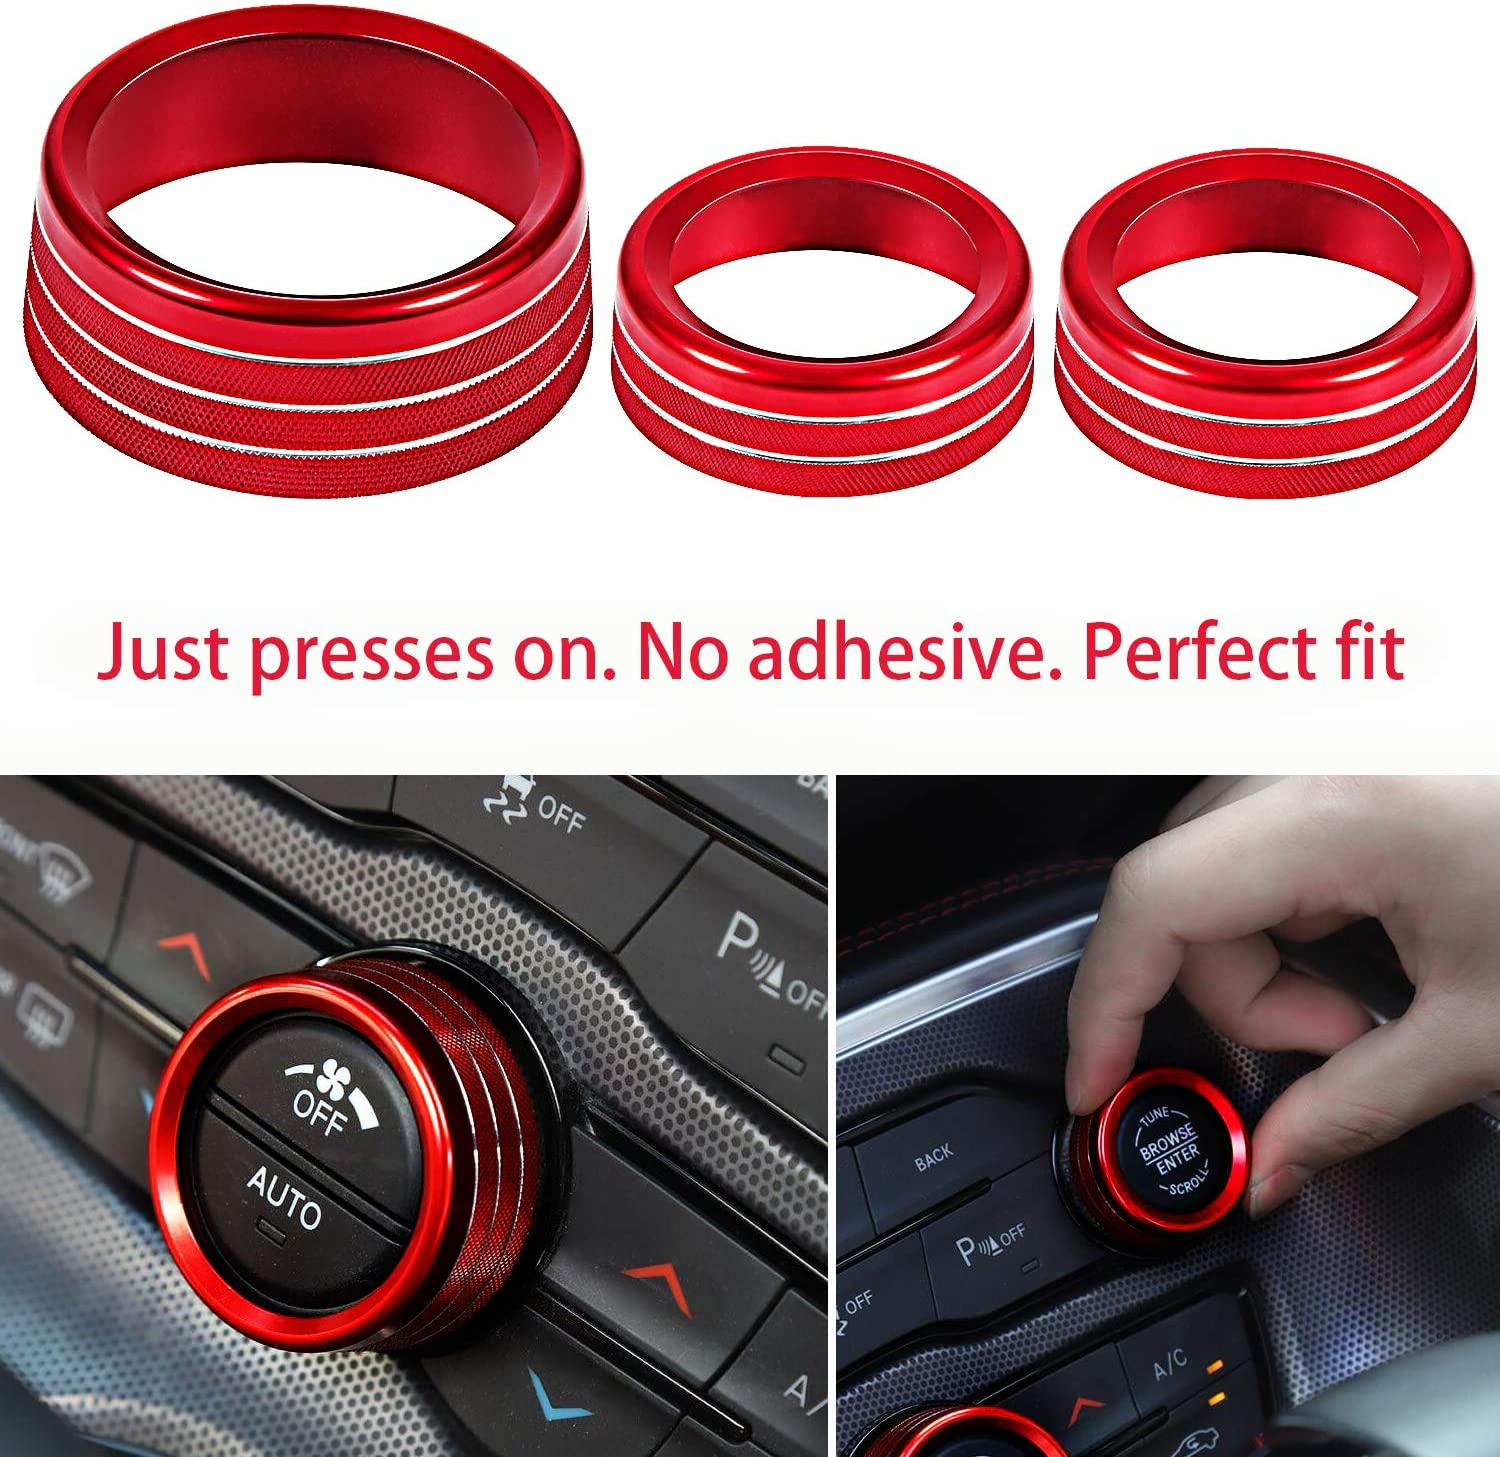 ToolEpic for Challenger Charger Accessories-Decor Trim Rings of 3 Aluminum Alloy Bright Red Air Conditioner Switch CD Button Knob Cover for Dodge Challenger Charger Scat Pack 2015-2020